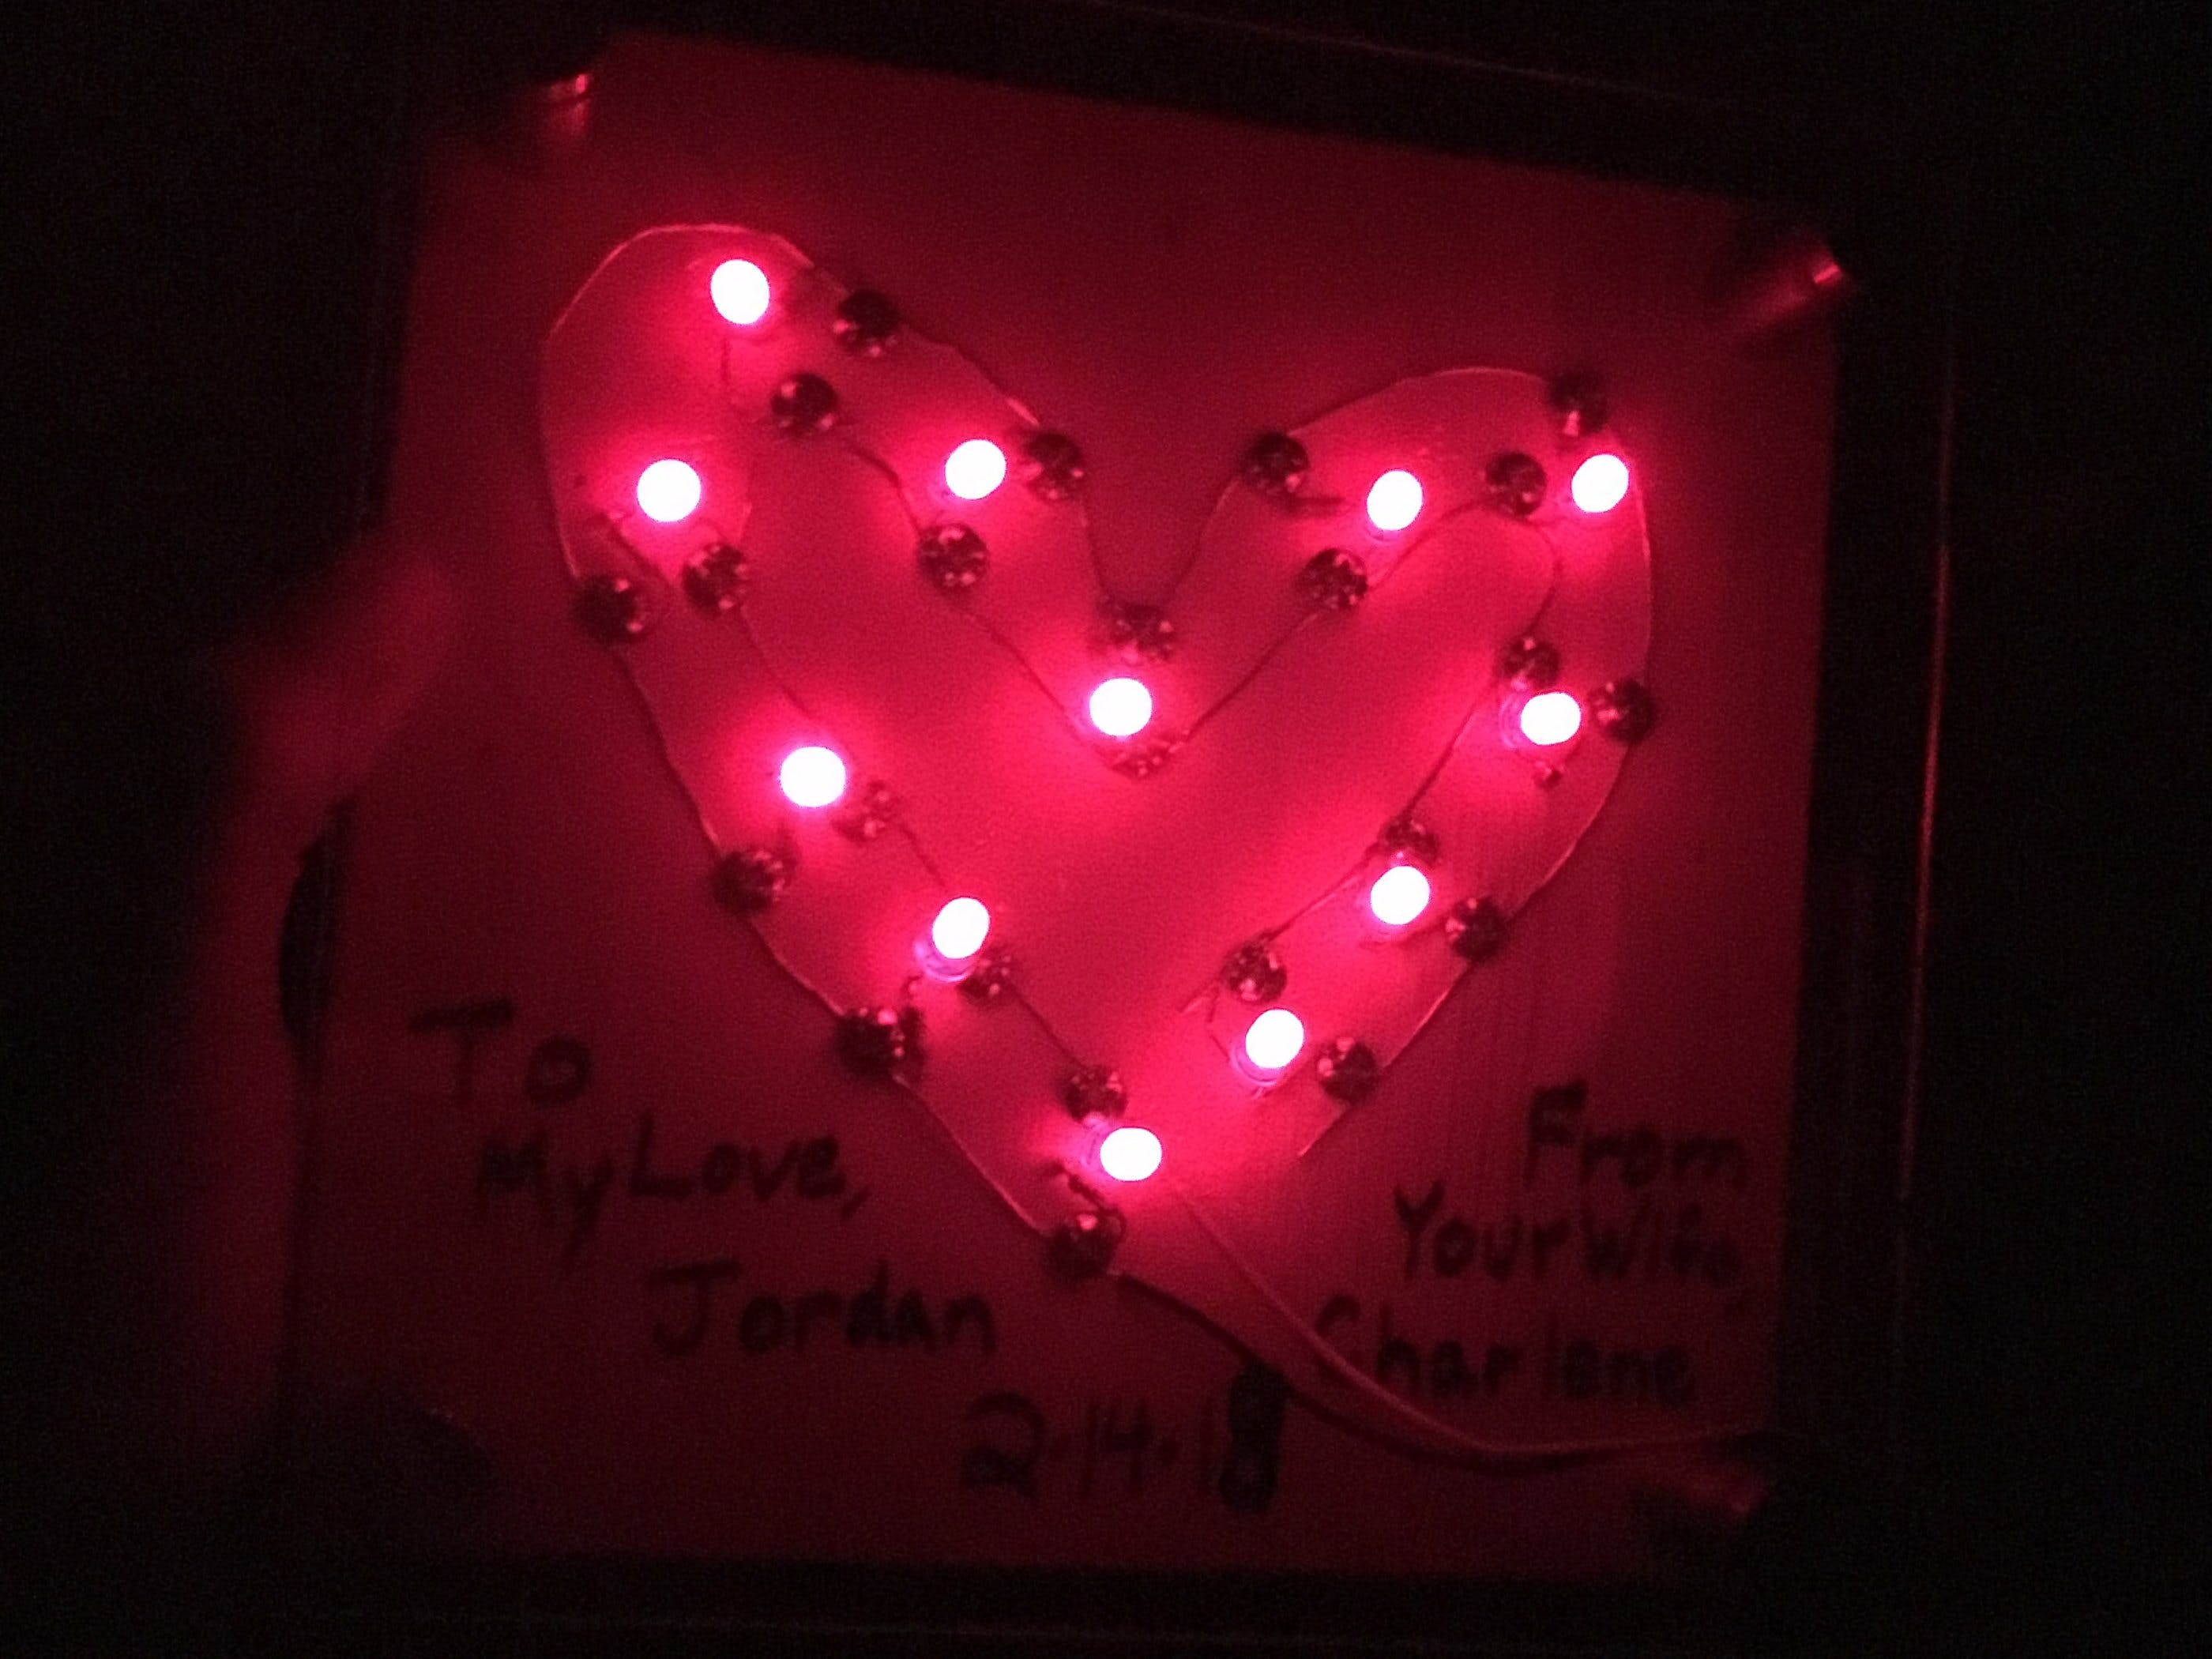 How to Make an LED Heart Display